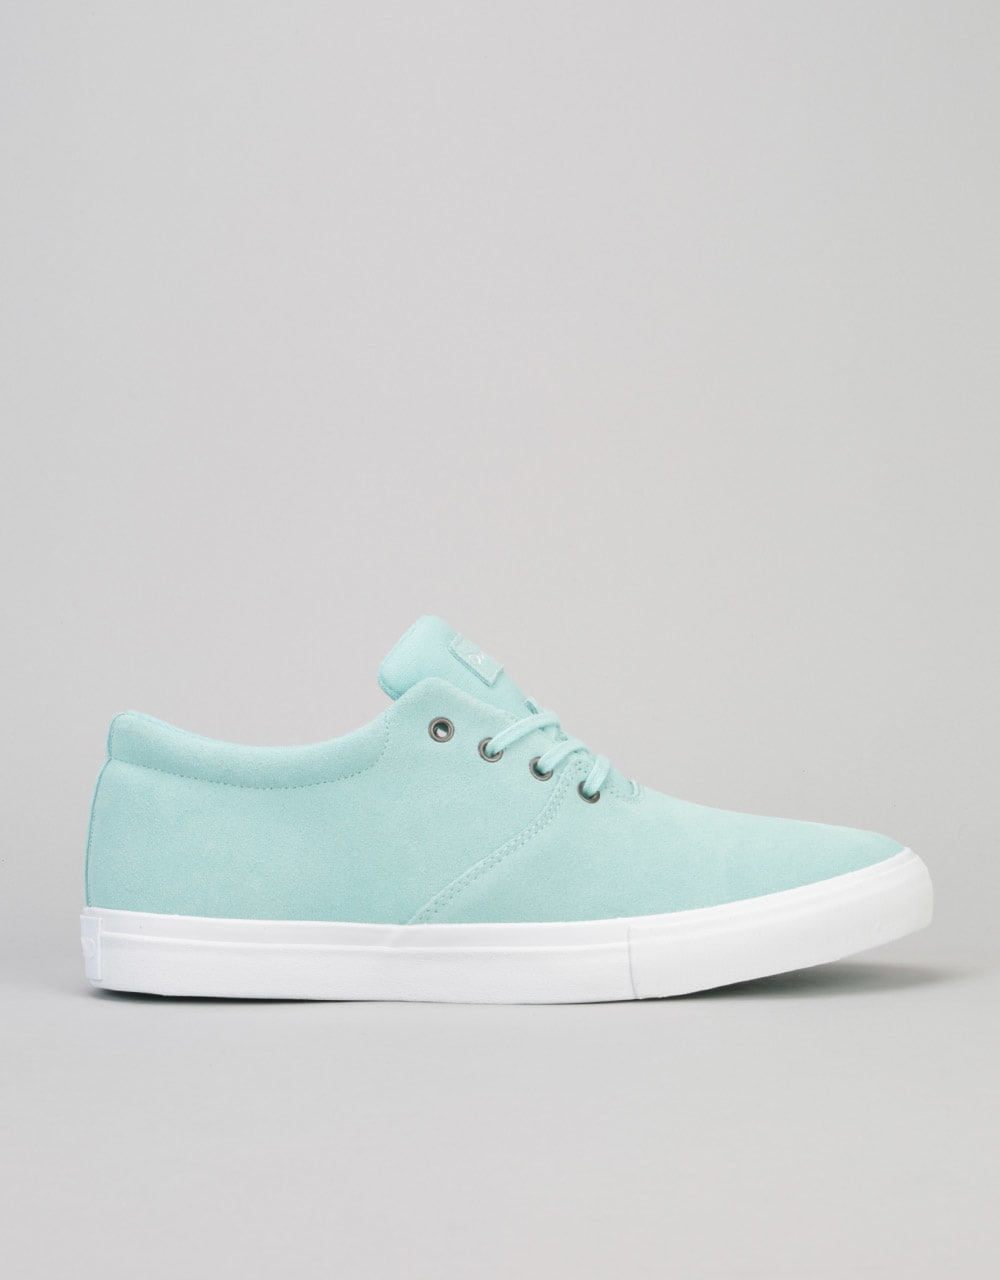 7f80858369 Diamond Supply Co. Torey Skate Shoes - Diamond Blue Suede